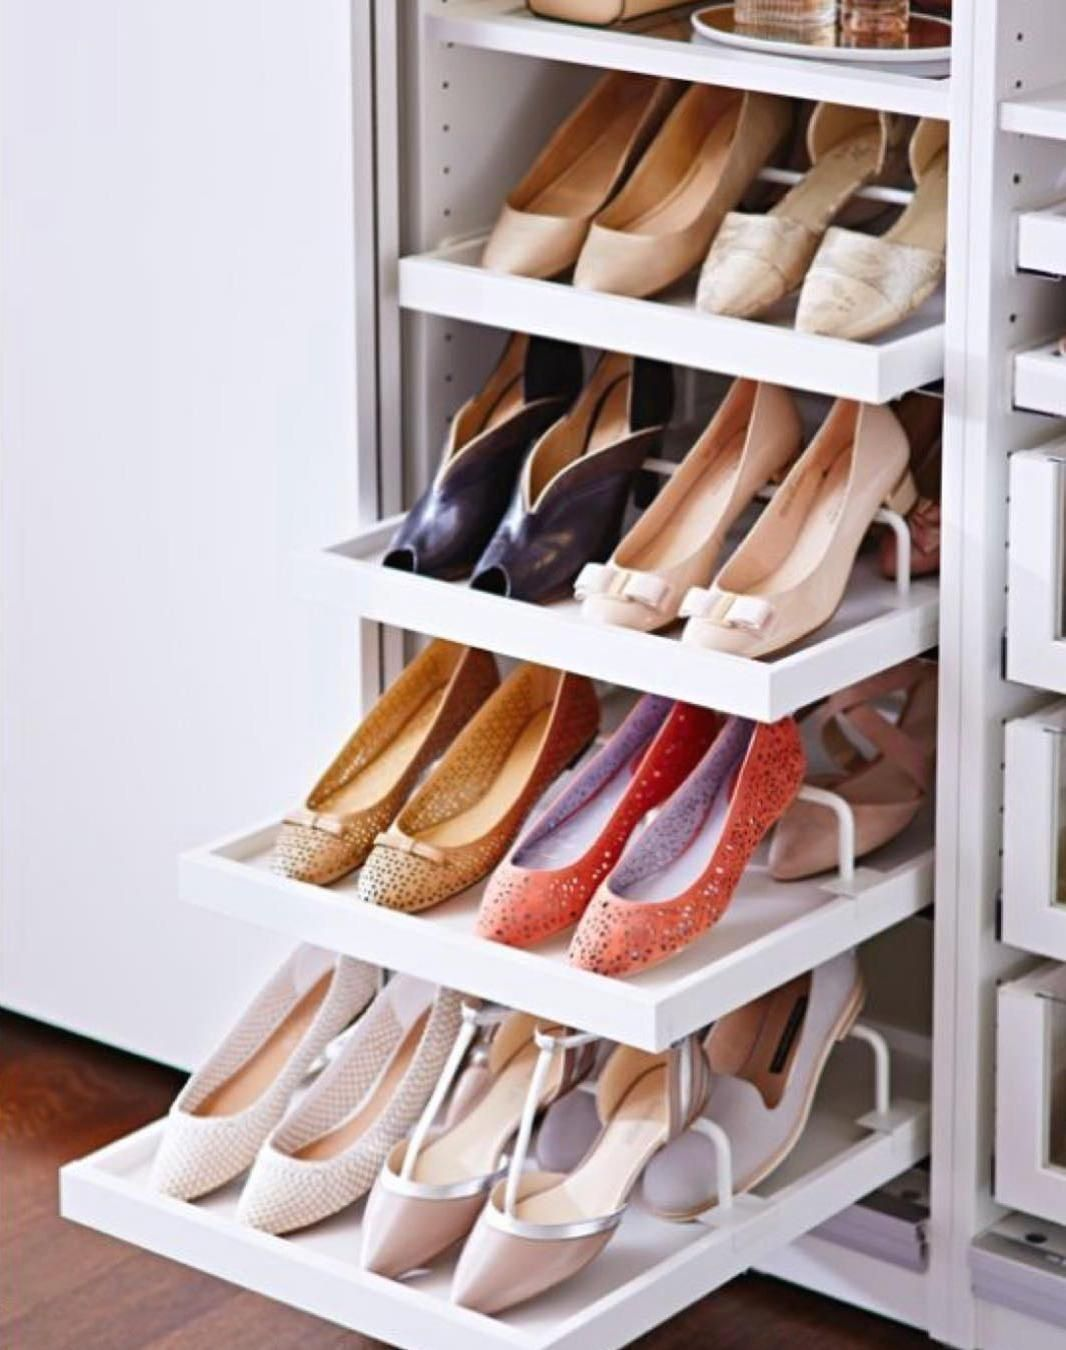 Pin on shoe storage ideas for small spaces